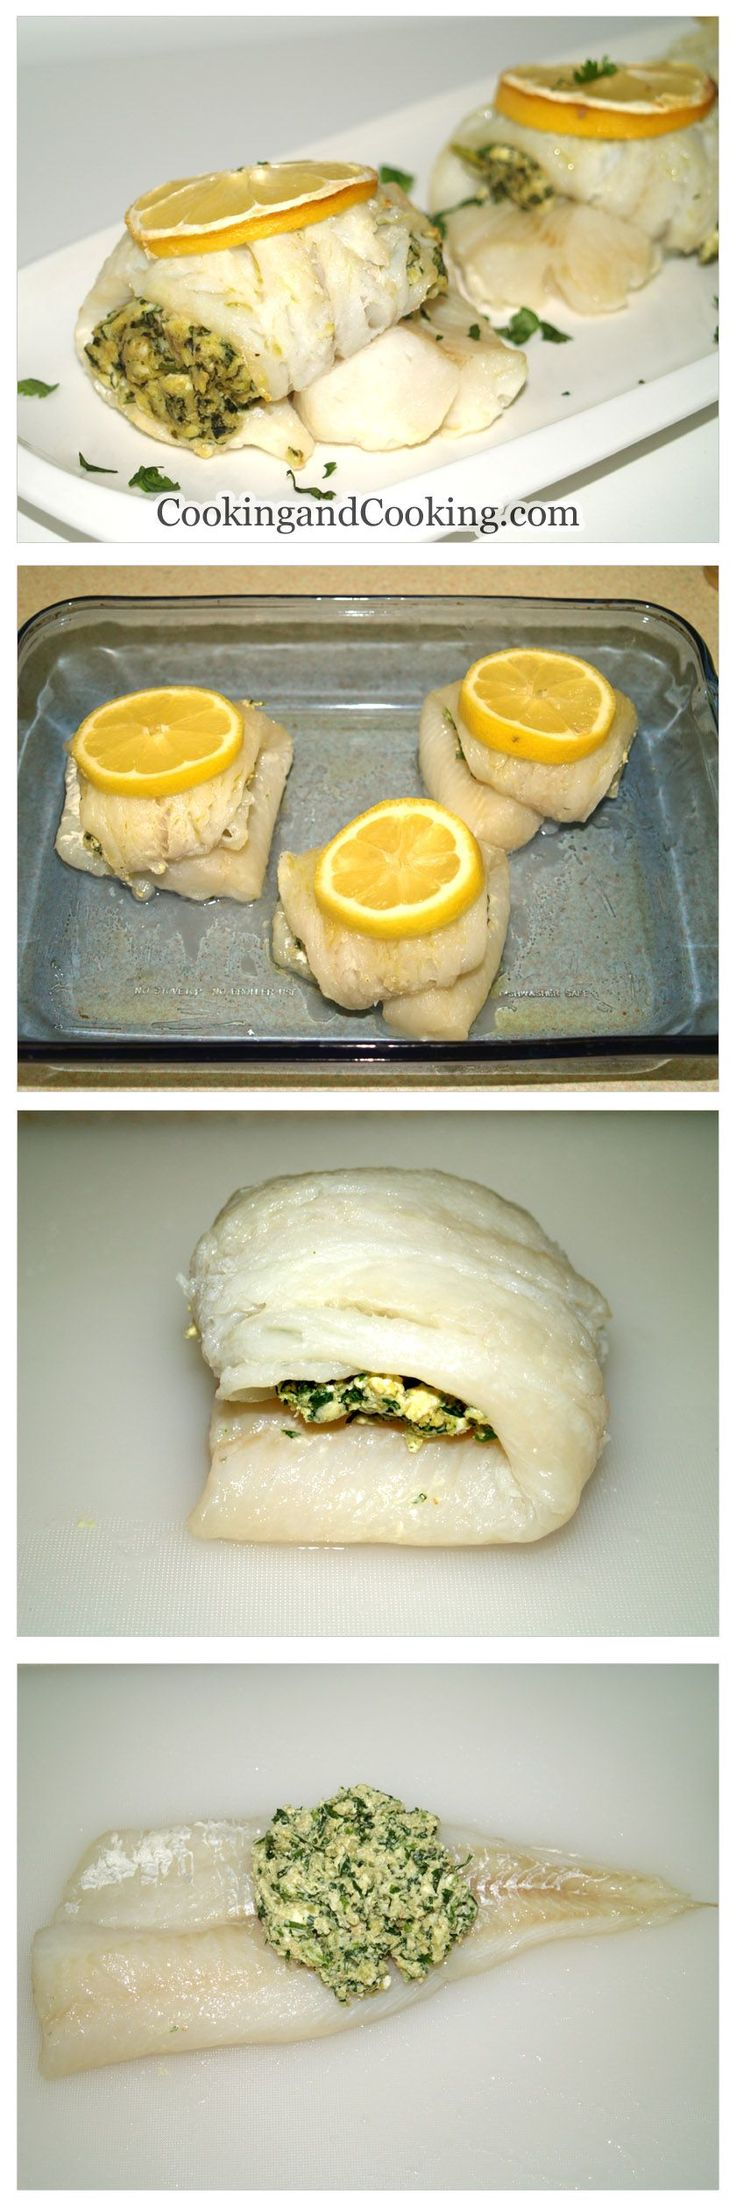 20 best ideas about stuffed fish on pinterest stuffed for How to bake fish fillet